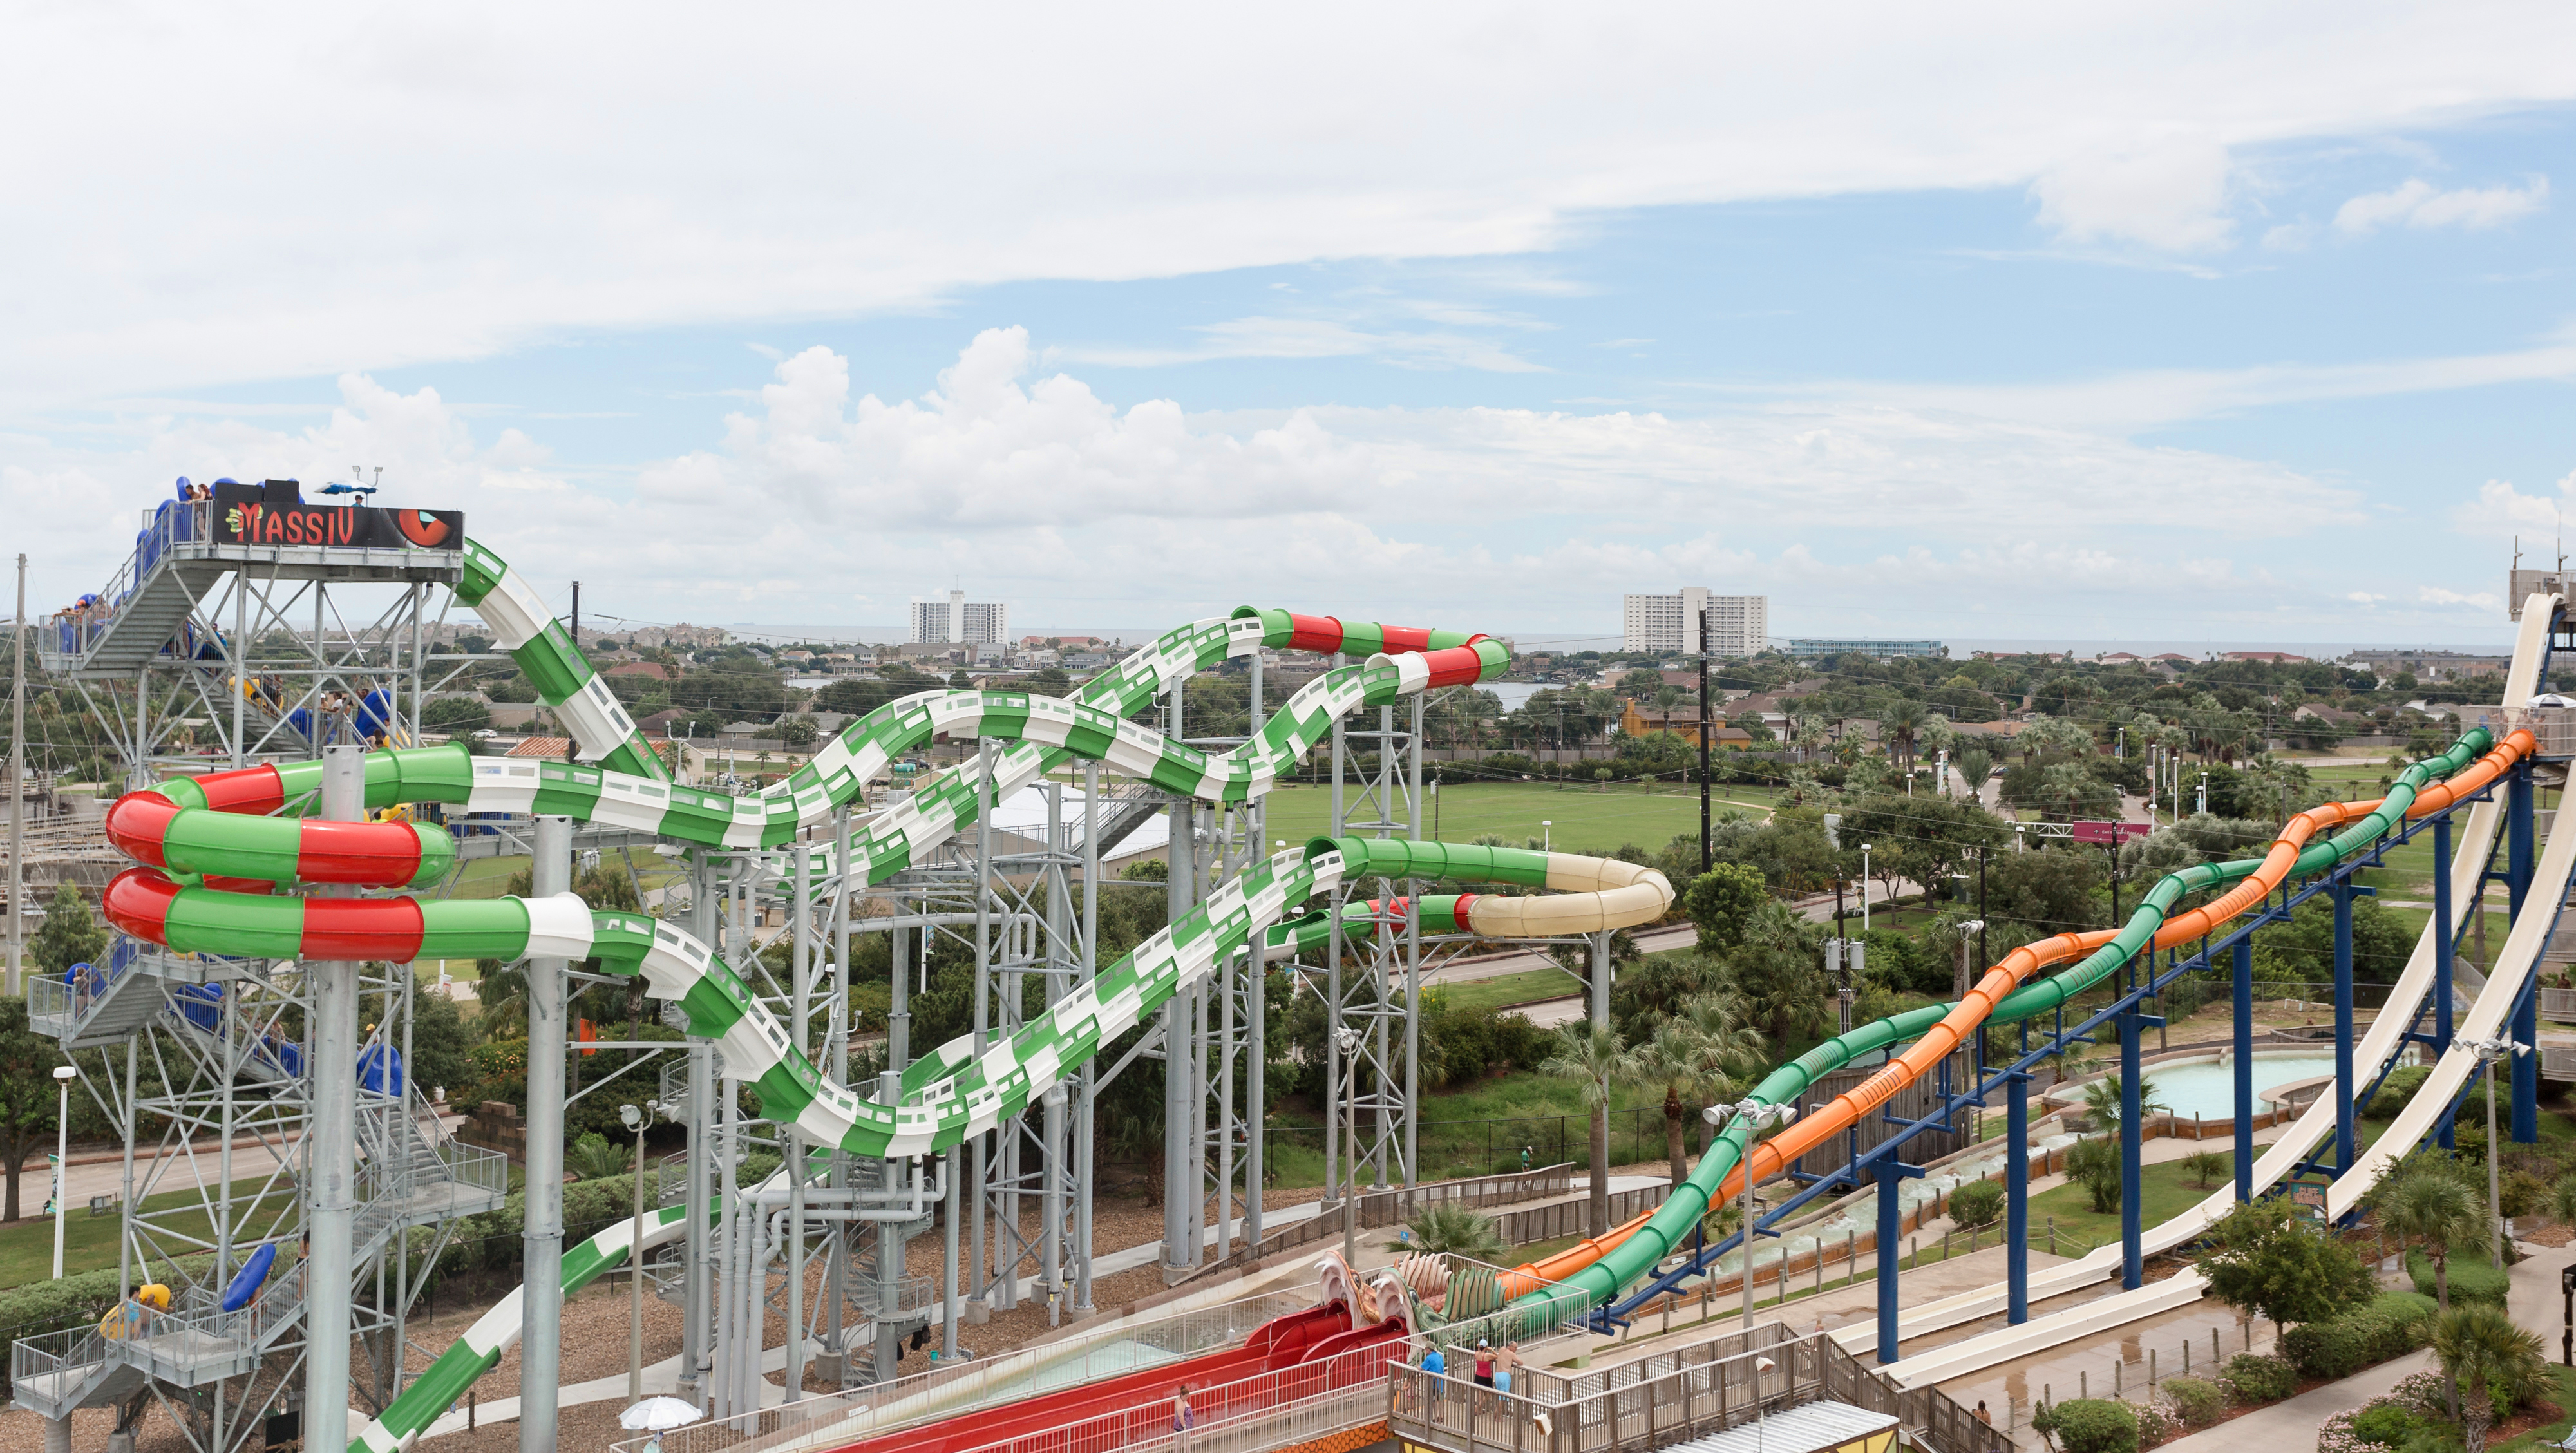 Schlitterbahn Water Park on South Padre Island in Texas.